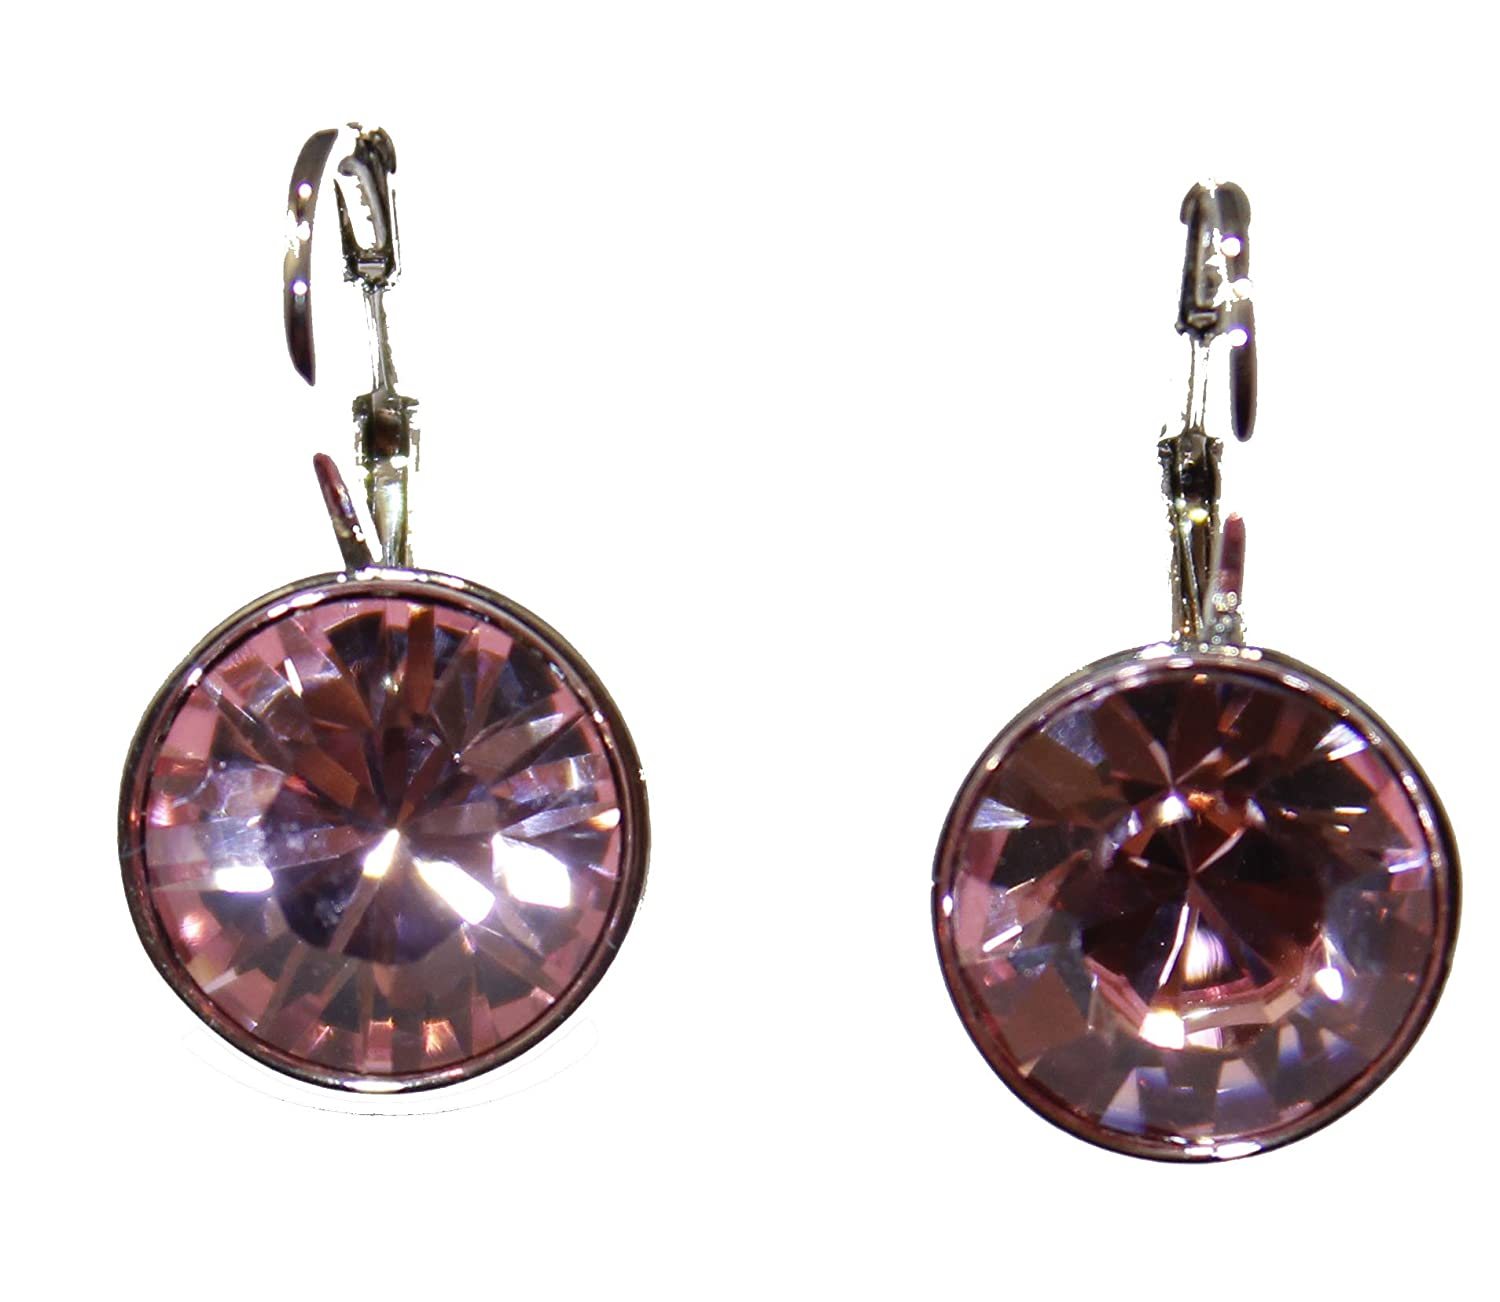 8d5d01bf126c63 Swarovski Elements Pink Bella Earrings Silver Plated Dangle Earrings  Leverback: Amazon.ca: Jewelry